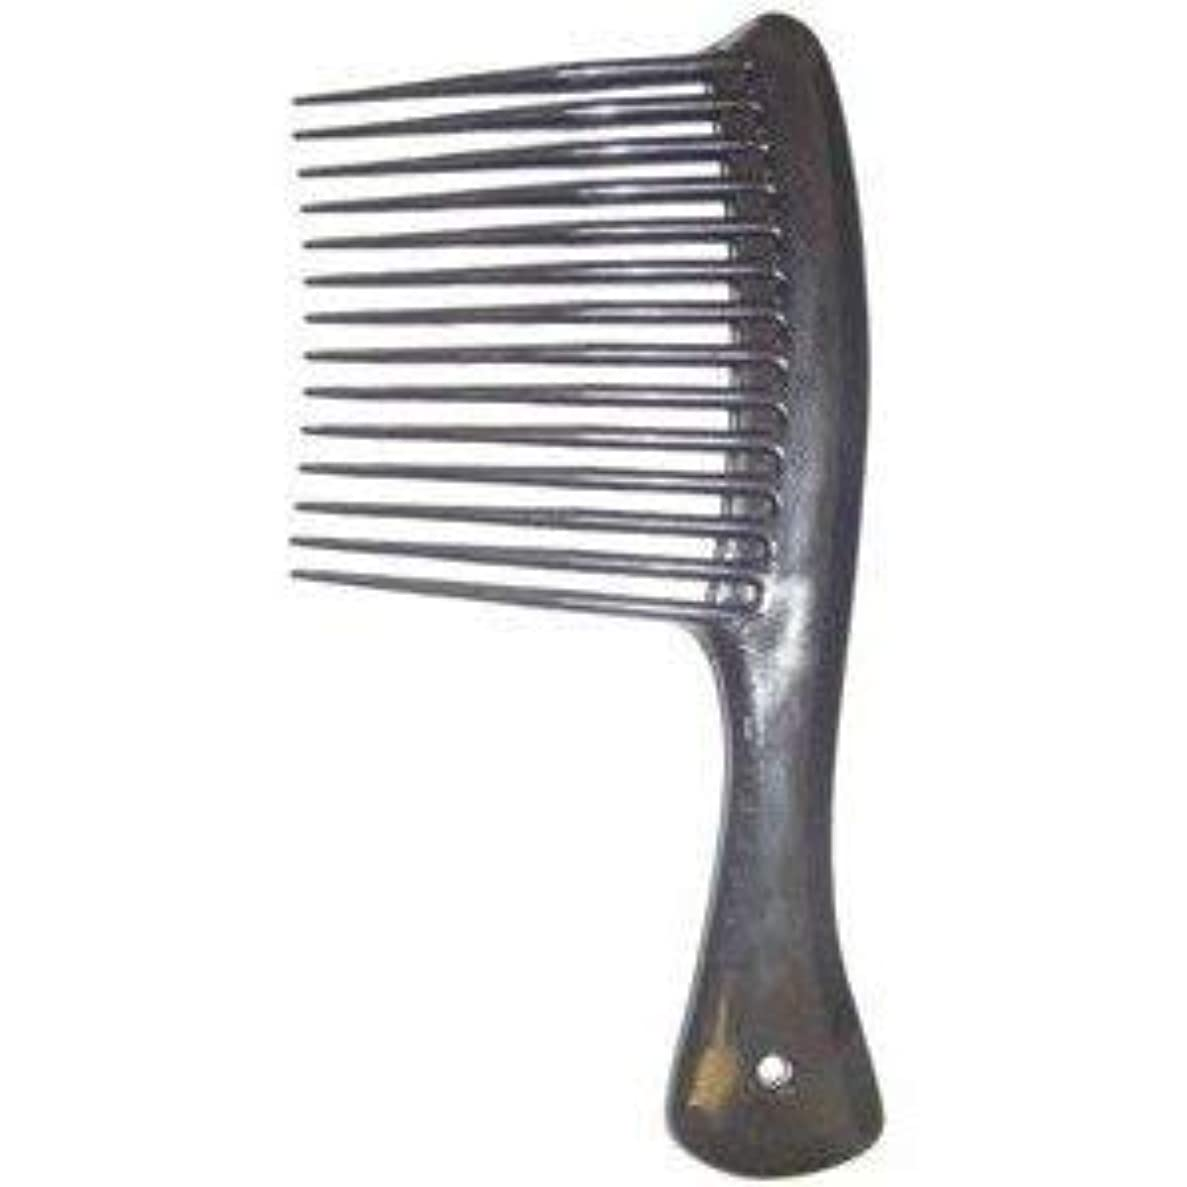 枝リッチ中央Large Tooth Shampoo Detangling Comb Rack Hair Comb (Black) [並行輸入品]